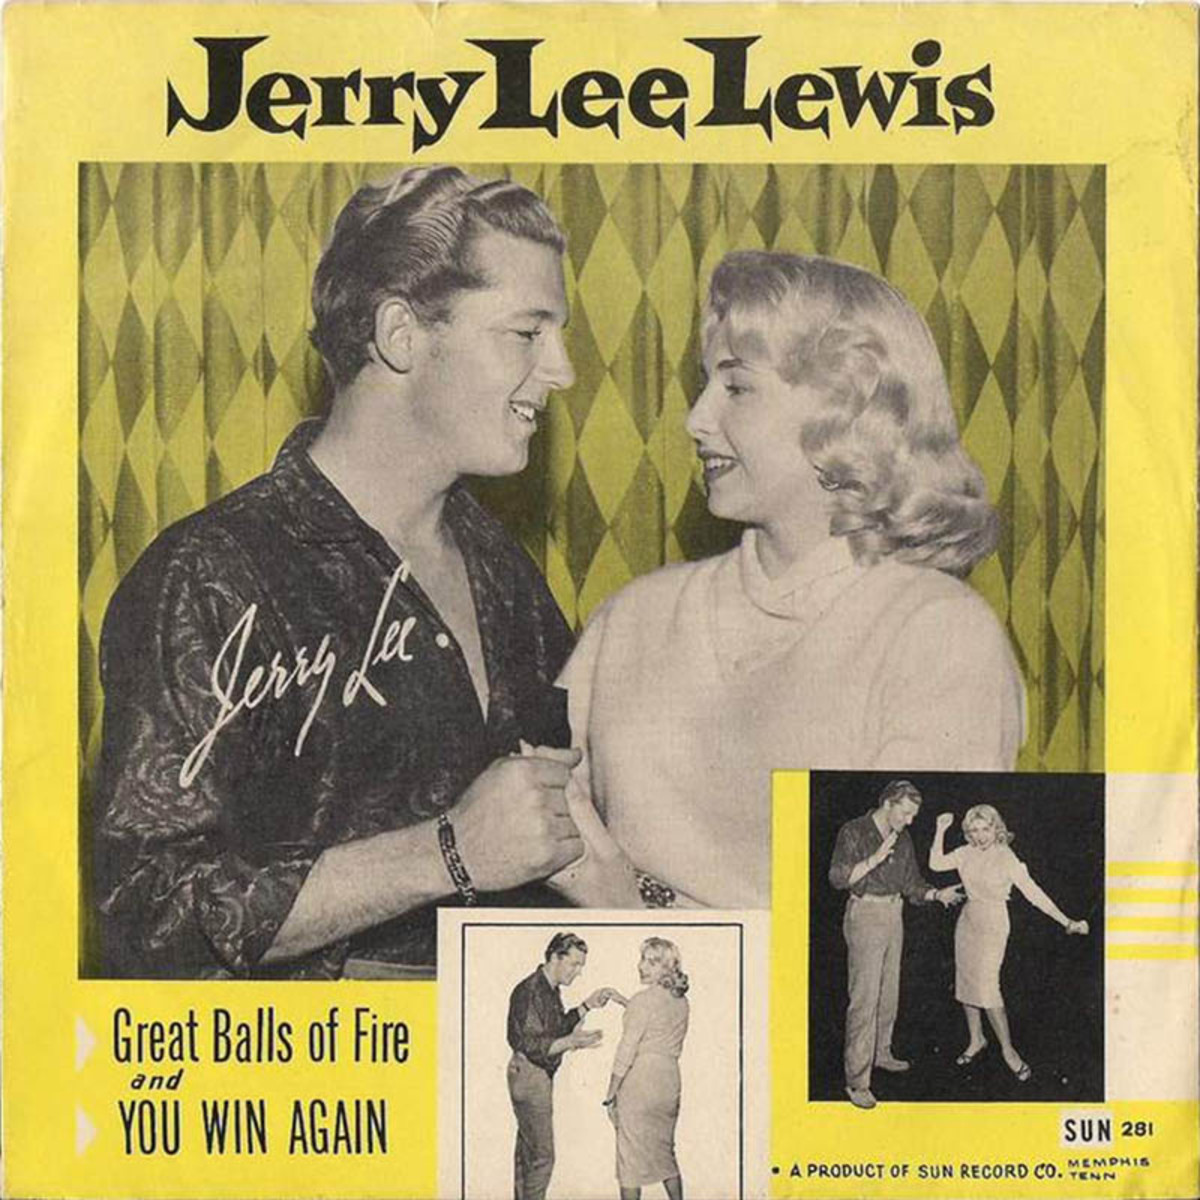 jerry-lee-lewis-and-his-pumping-piano-great-balls-of-fire-1957-3